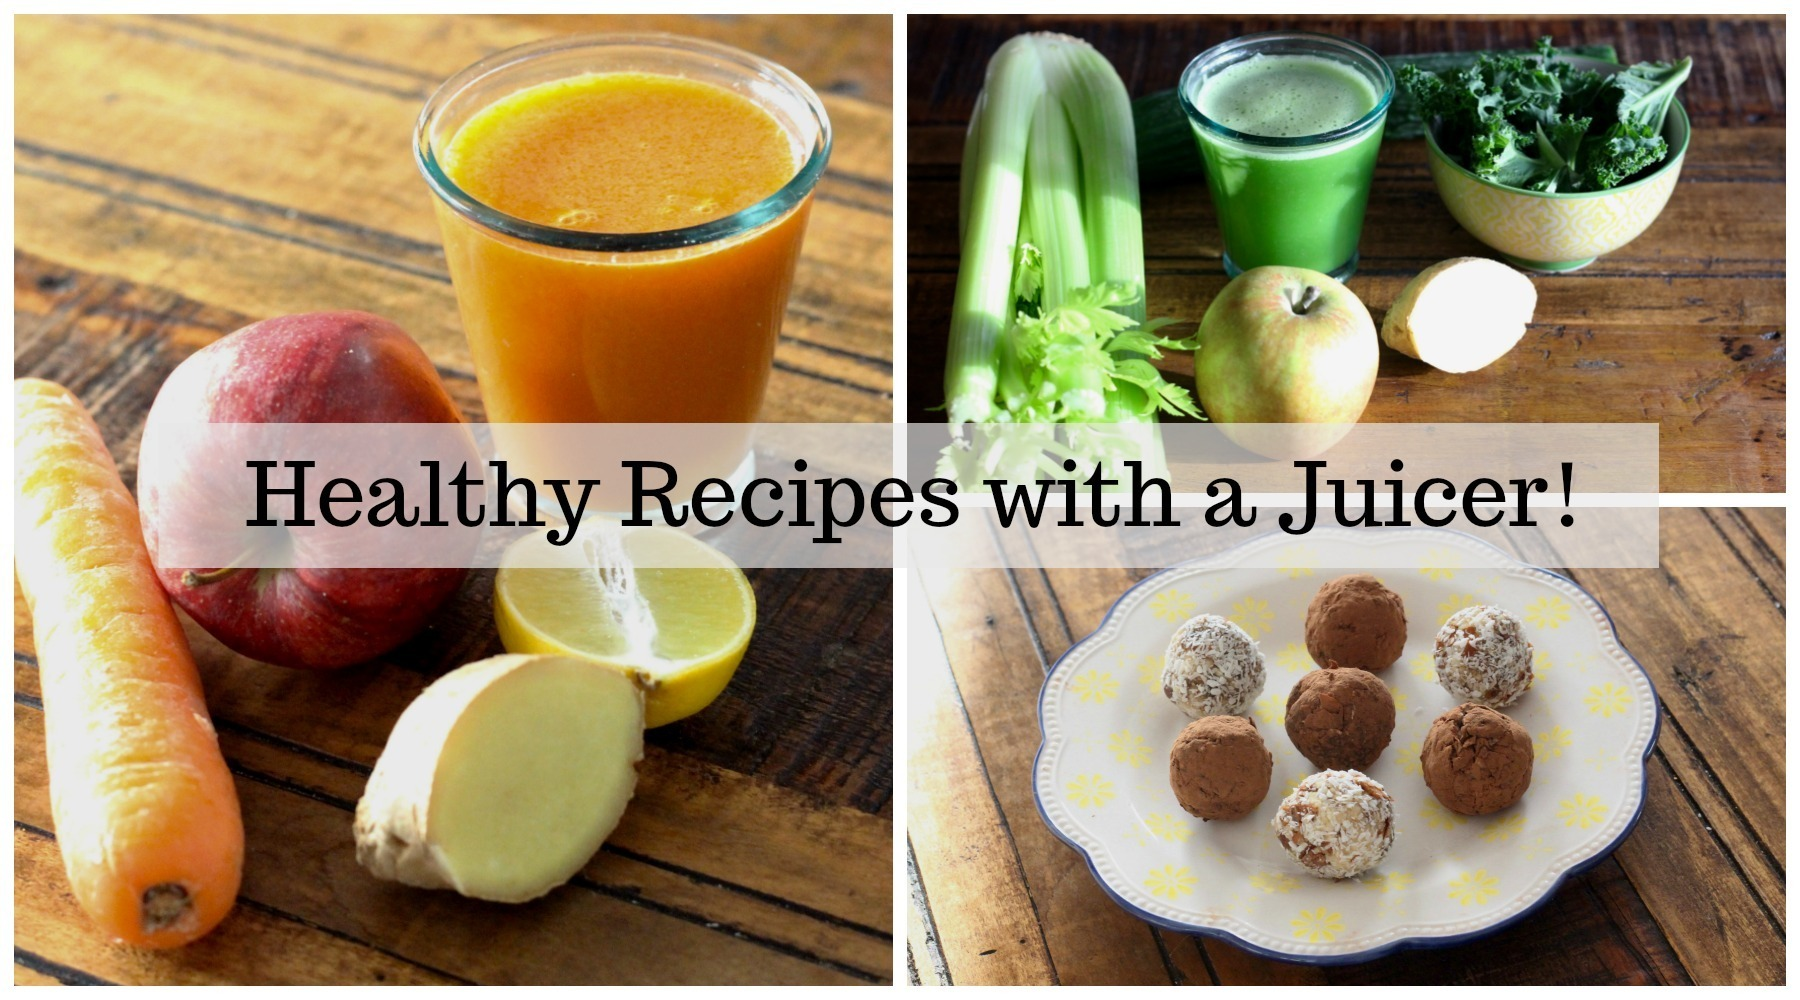 Golden Carrot & Classic Green Juice Recipes